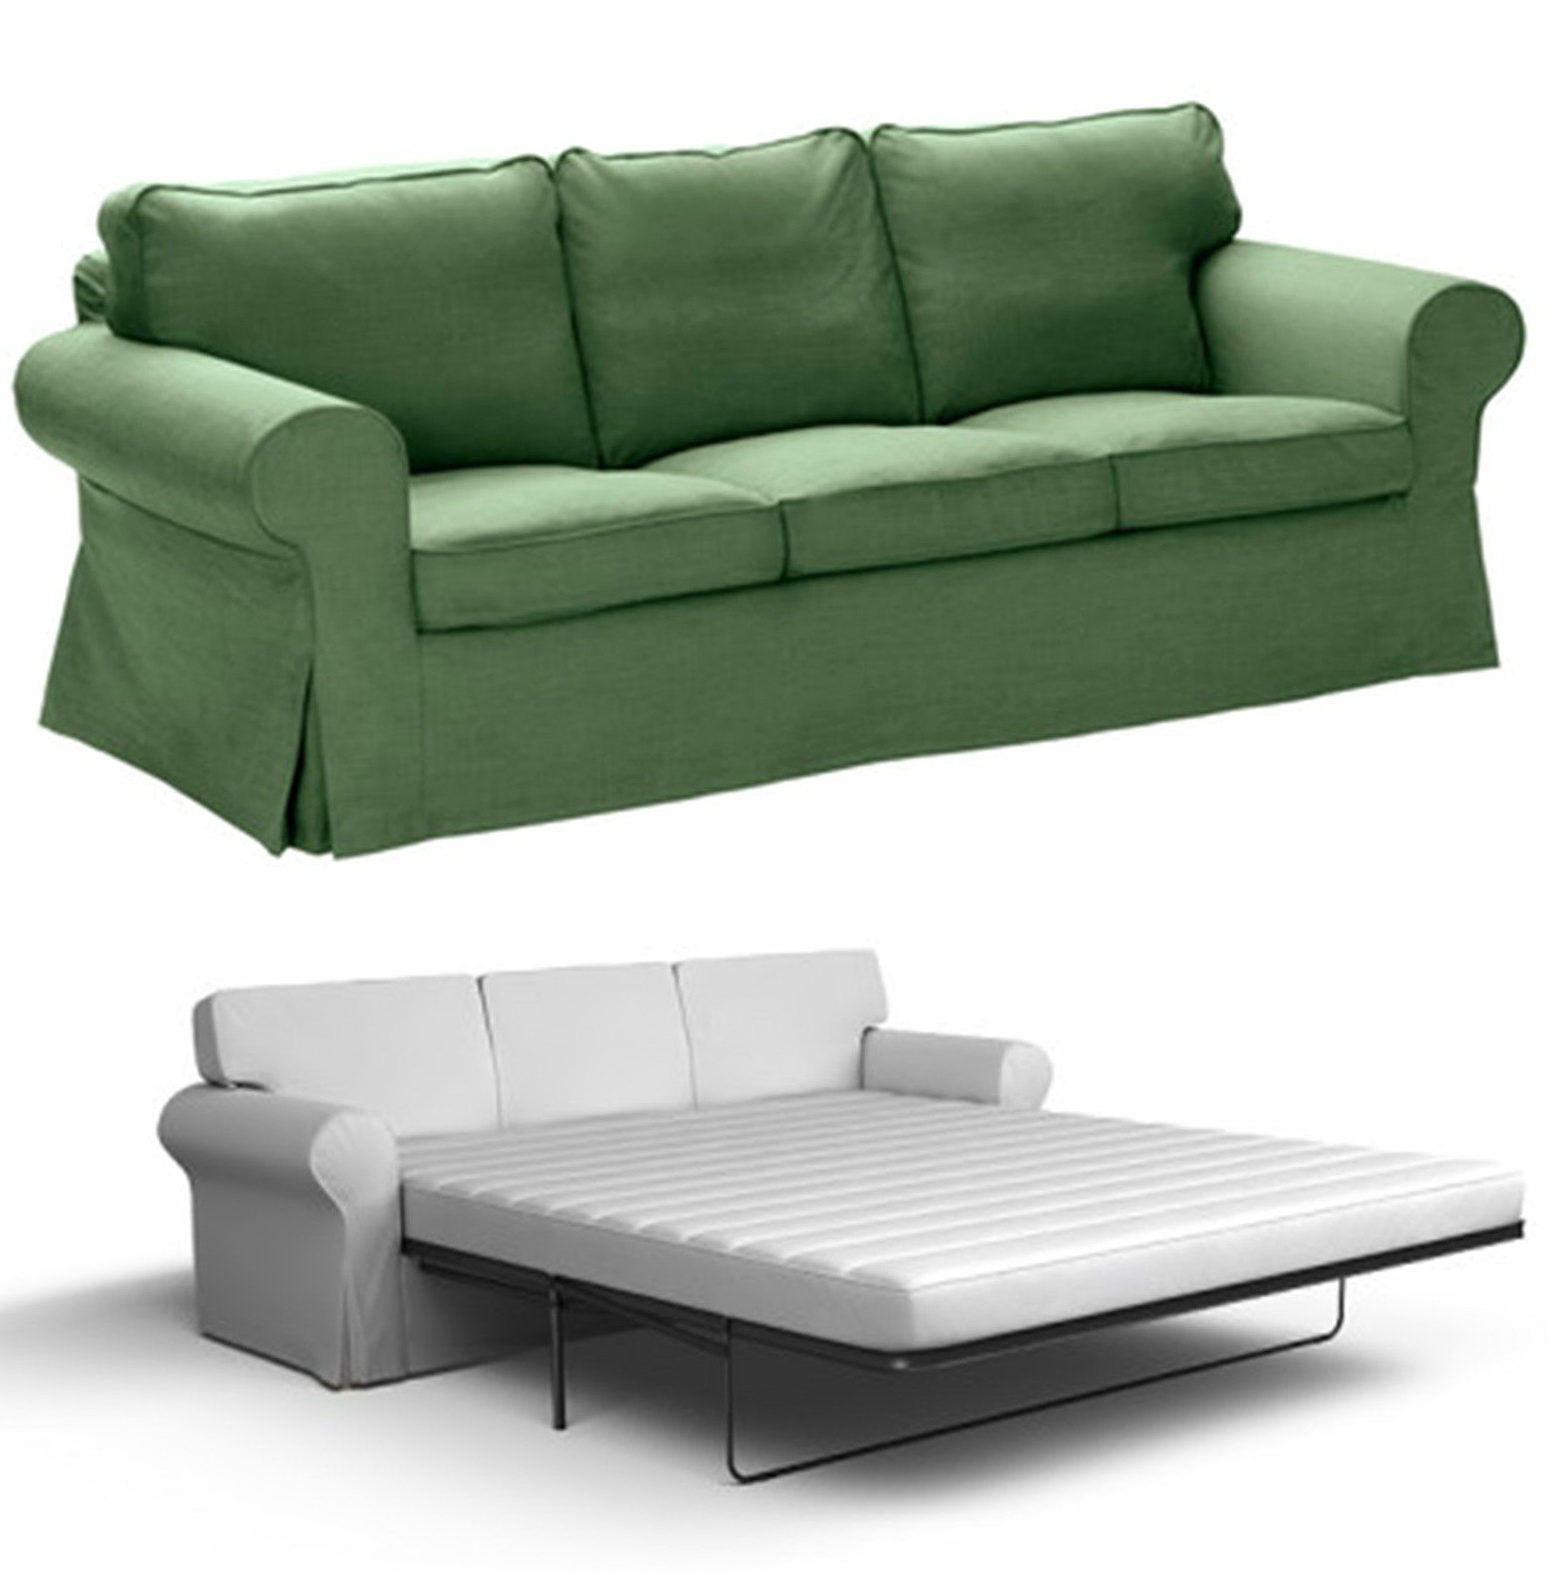 Ikea Sofa Beds Ebay